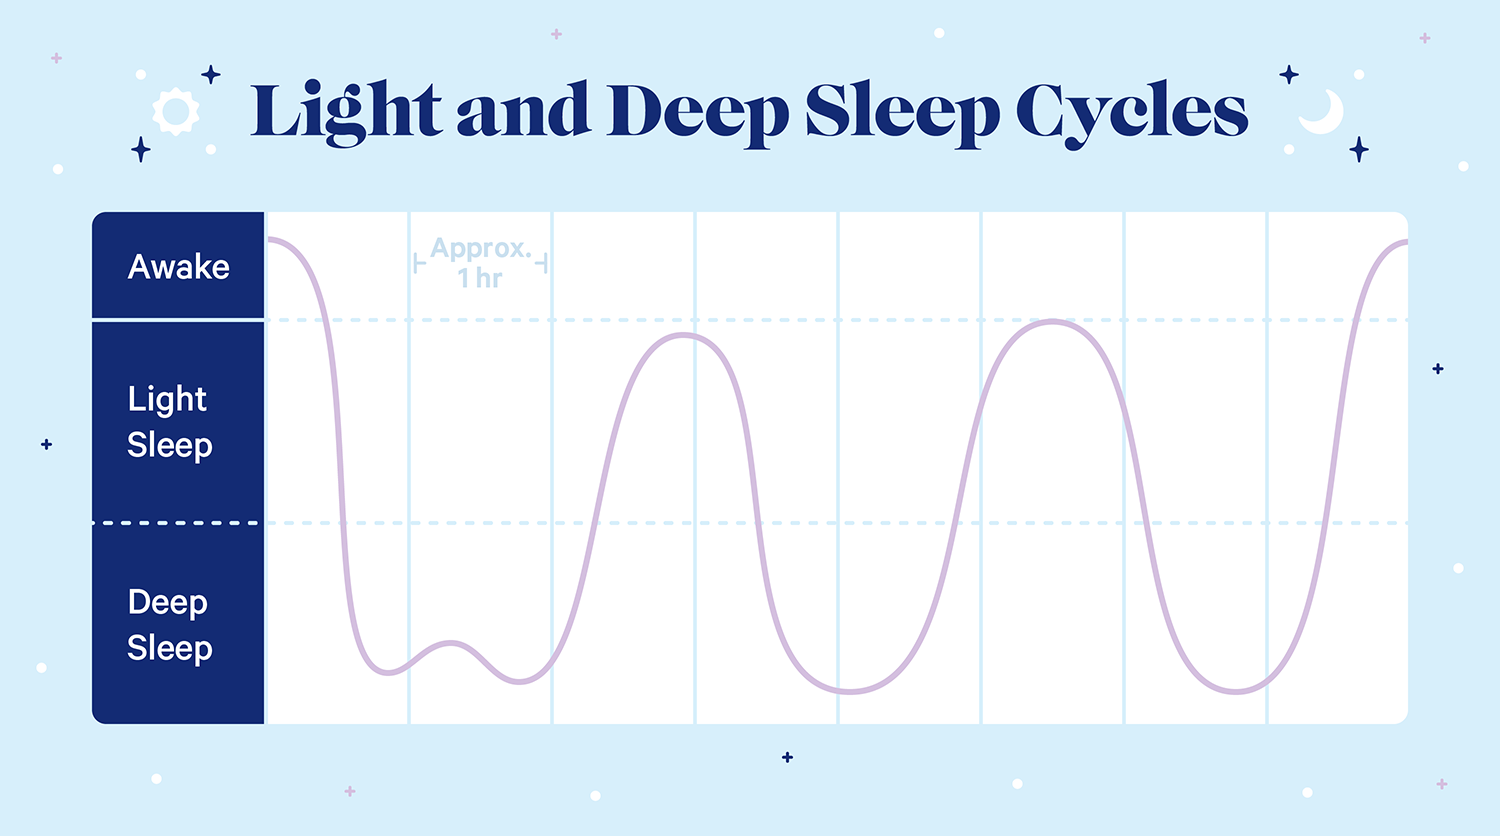 A graph showing light and deep sleep cycles. Over an 8-hour period, the body fluctuates between light sleep and deep sleep every hour or so.